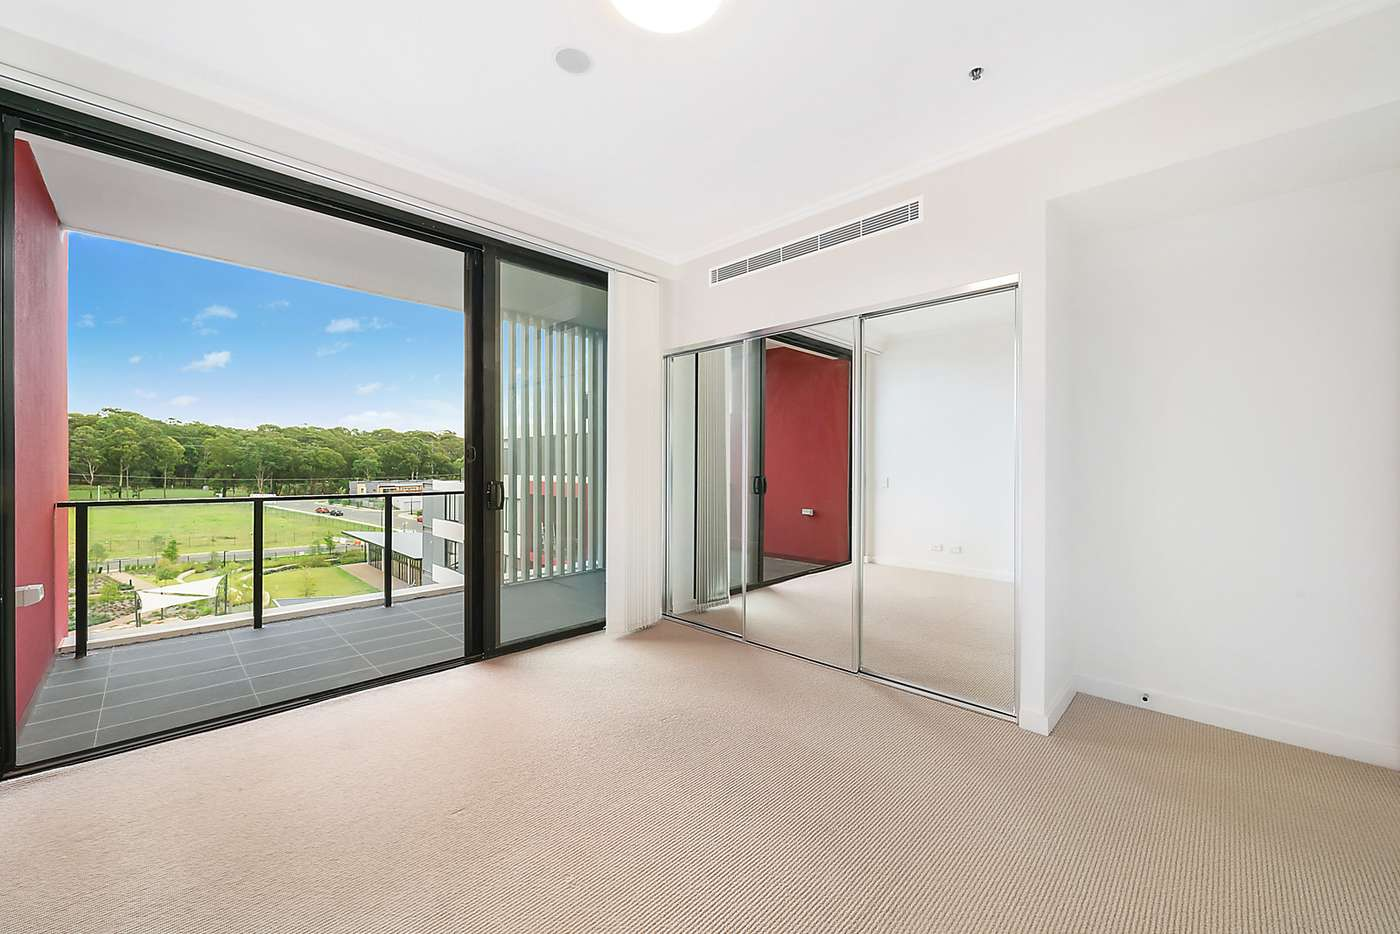 Sixth view of Homely unit listing, 505/10 Grassland Street, Rouse Hill NSW 2155